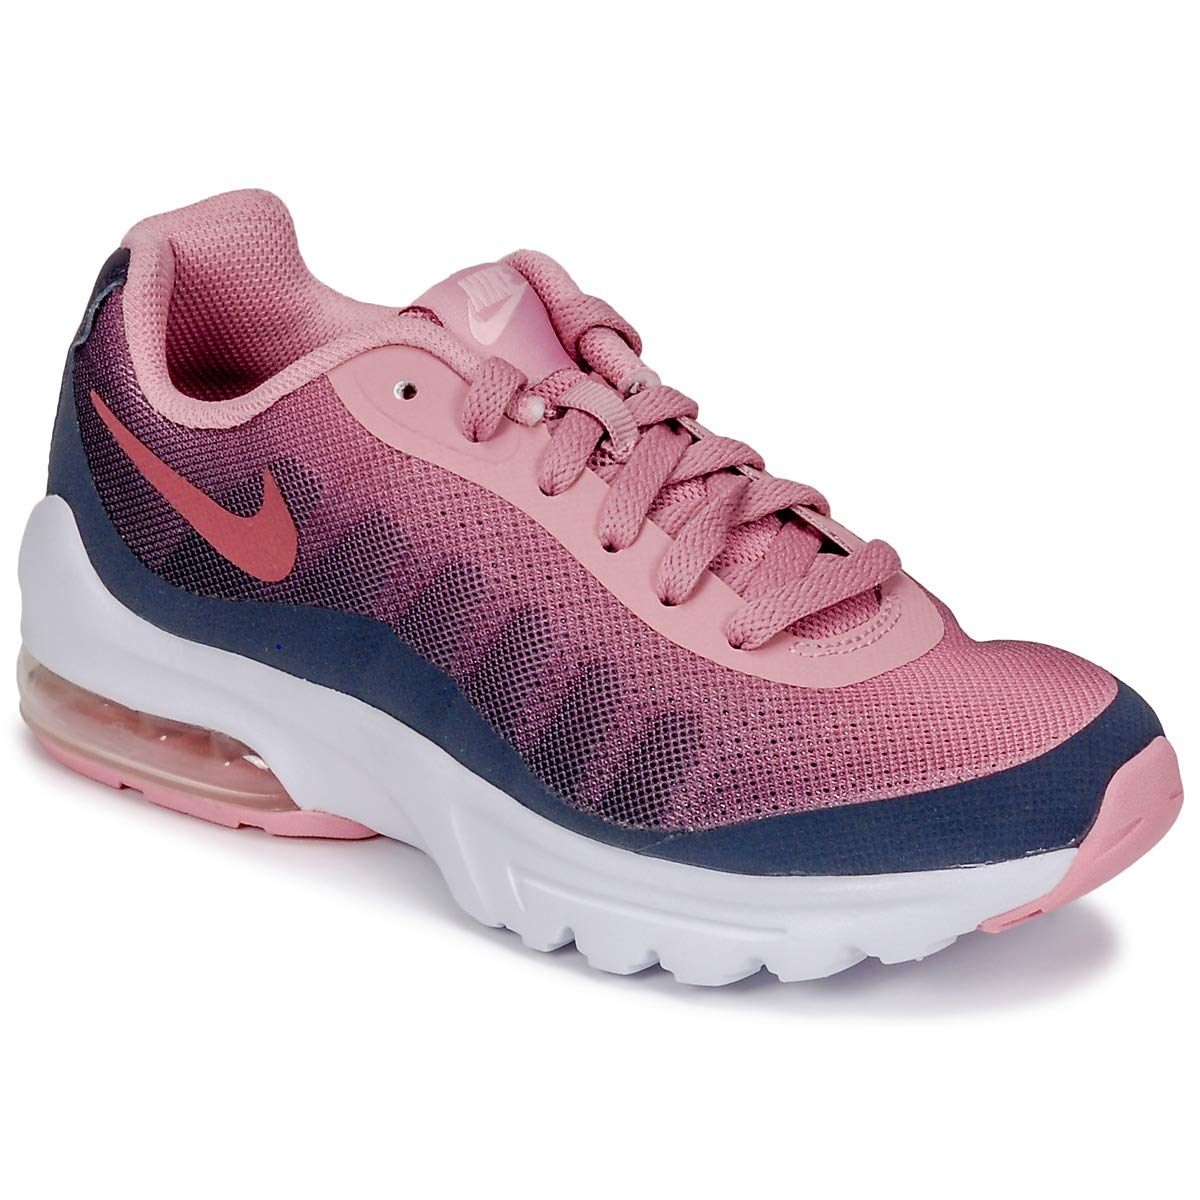 brand new 33bfd b478e Nike Women s Air Max Invigor Print (gs) Competition Running Shoes,  Multicolour (Gridiron Vintage Wine-Pink 002), 3.5 UK  Amazon.co.uk  Shoes    Bags